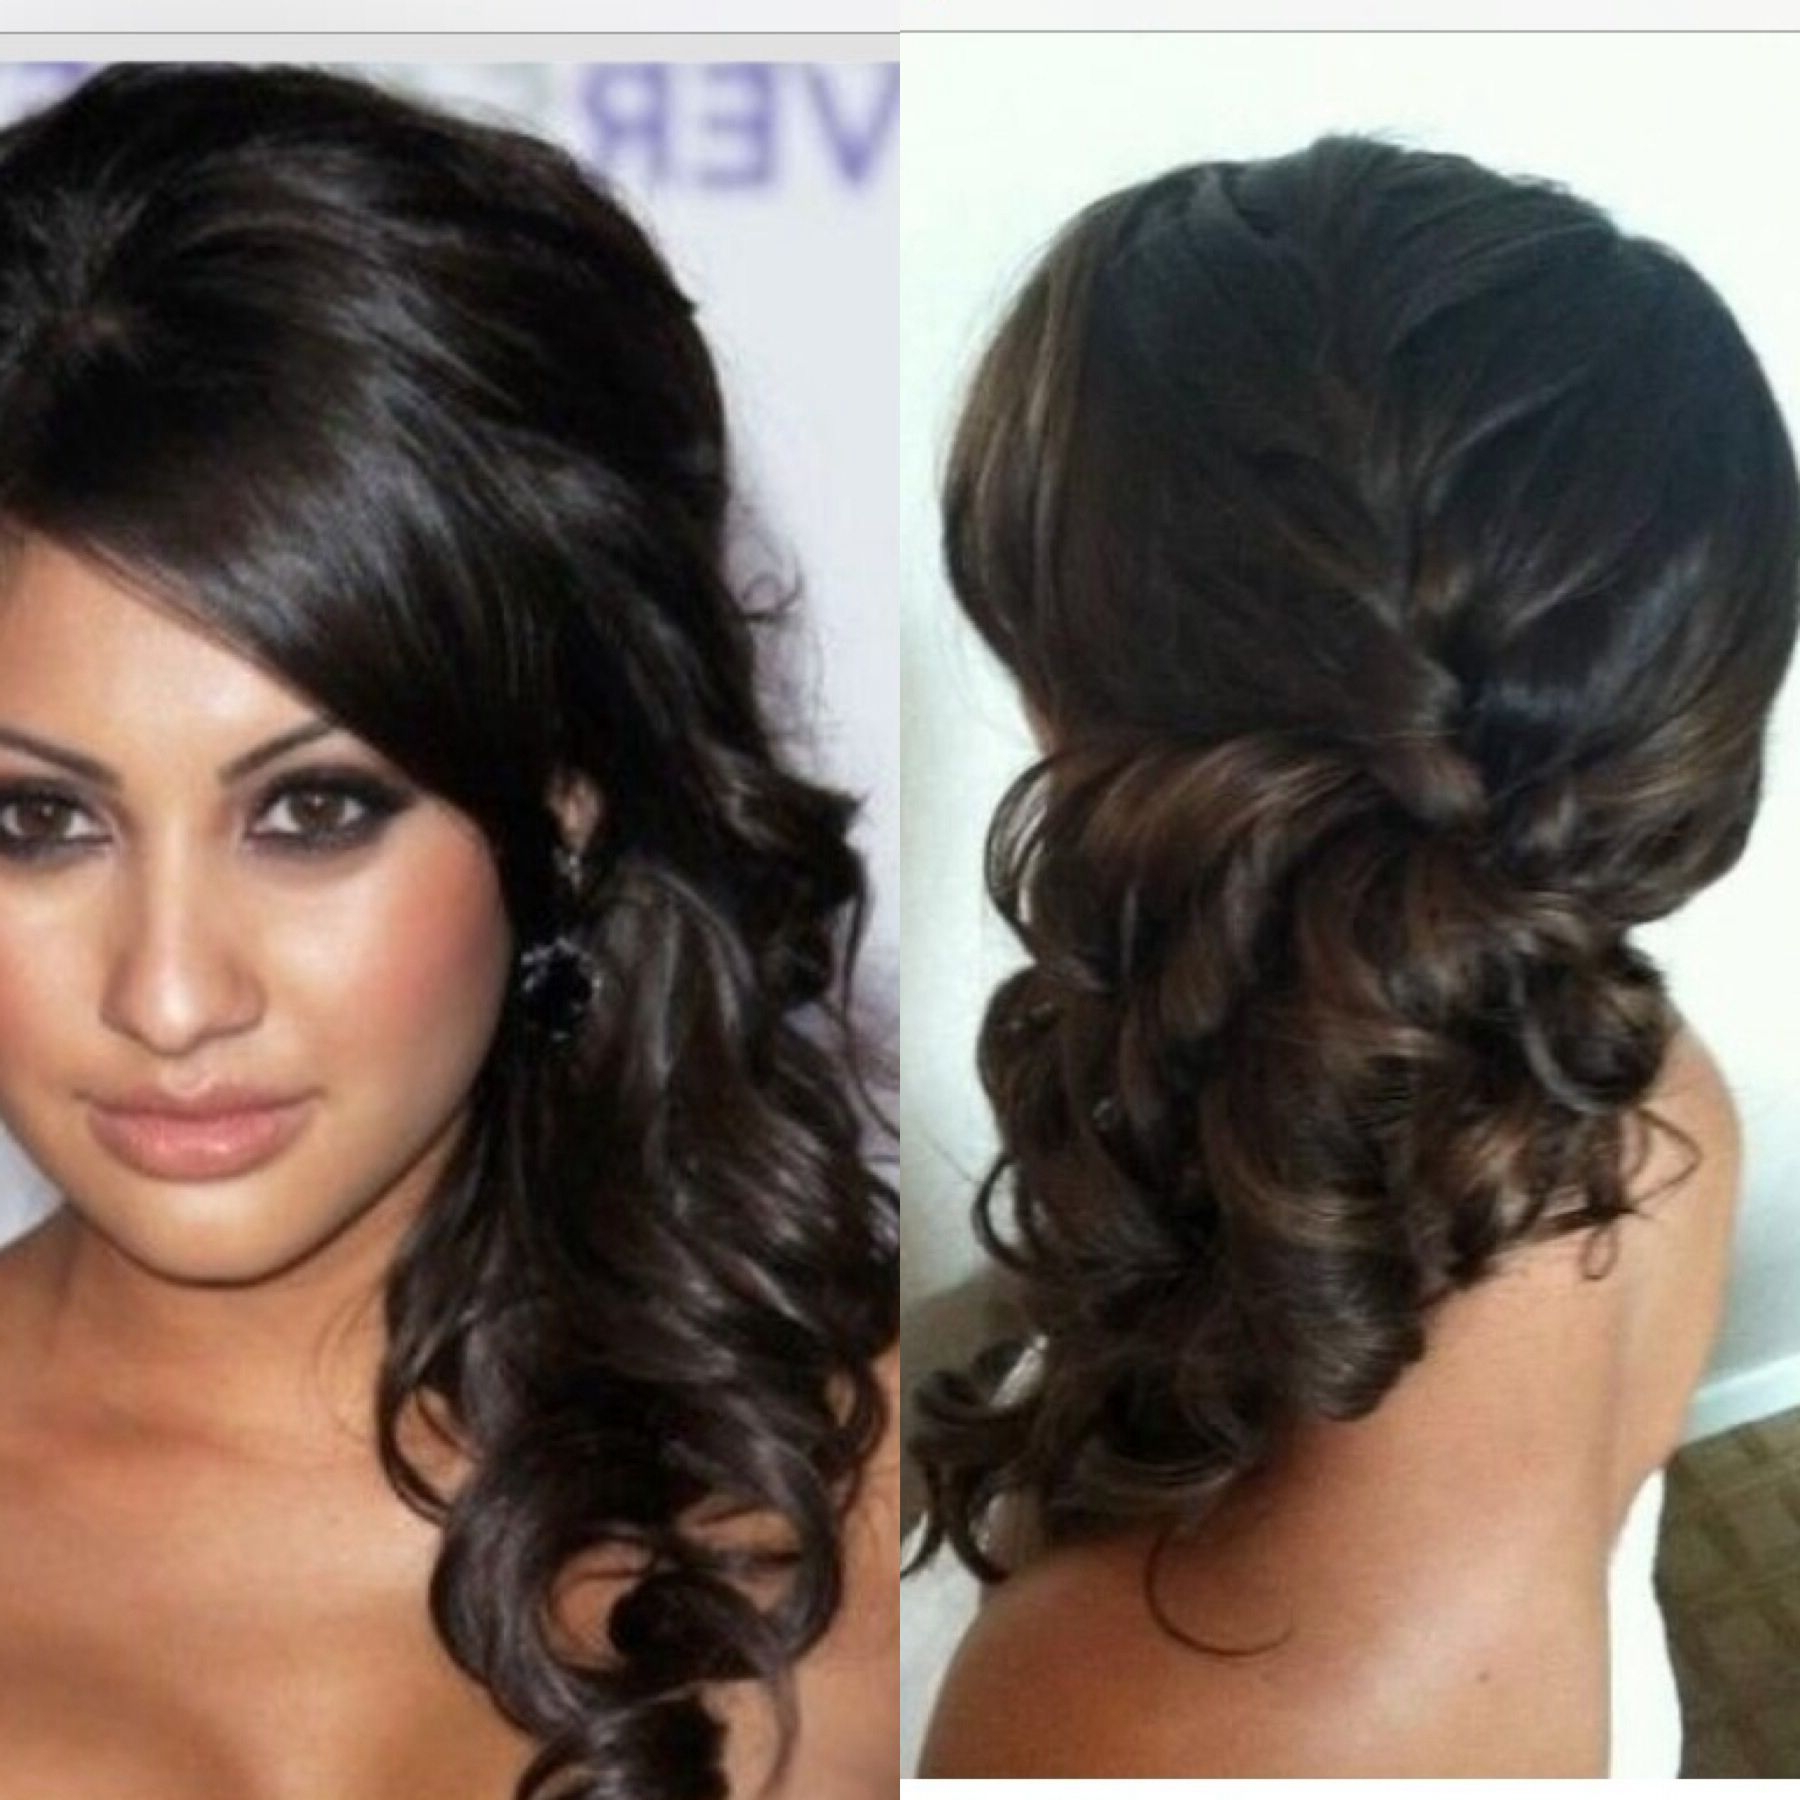 Fashionable Pinned Up Curls Side Swept Hairstyles With Bridesmaid Hair. Up Do (View 9 of 20)